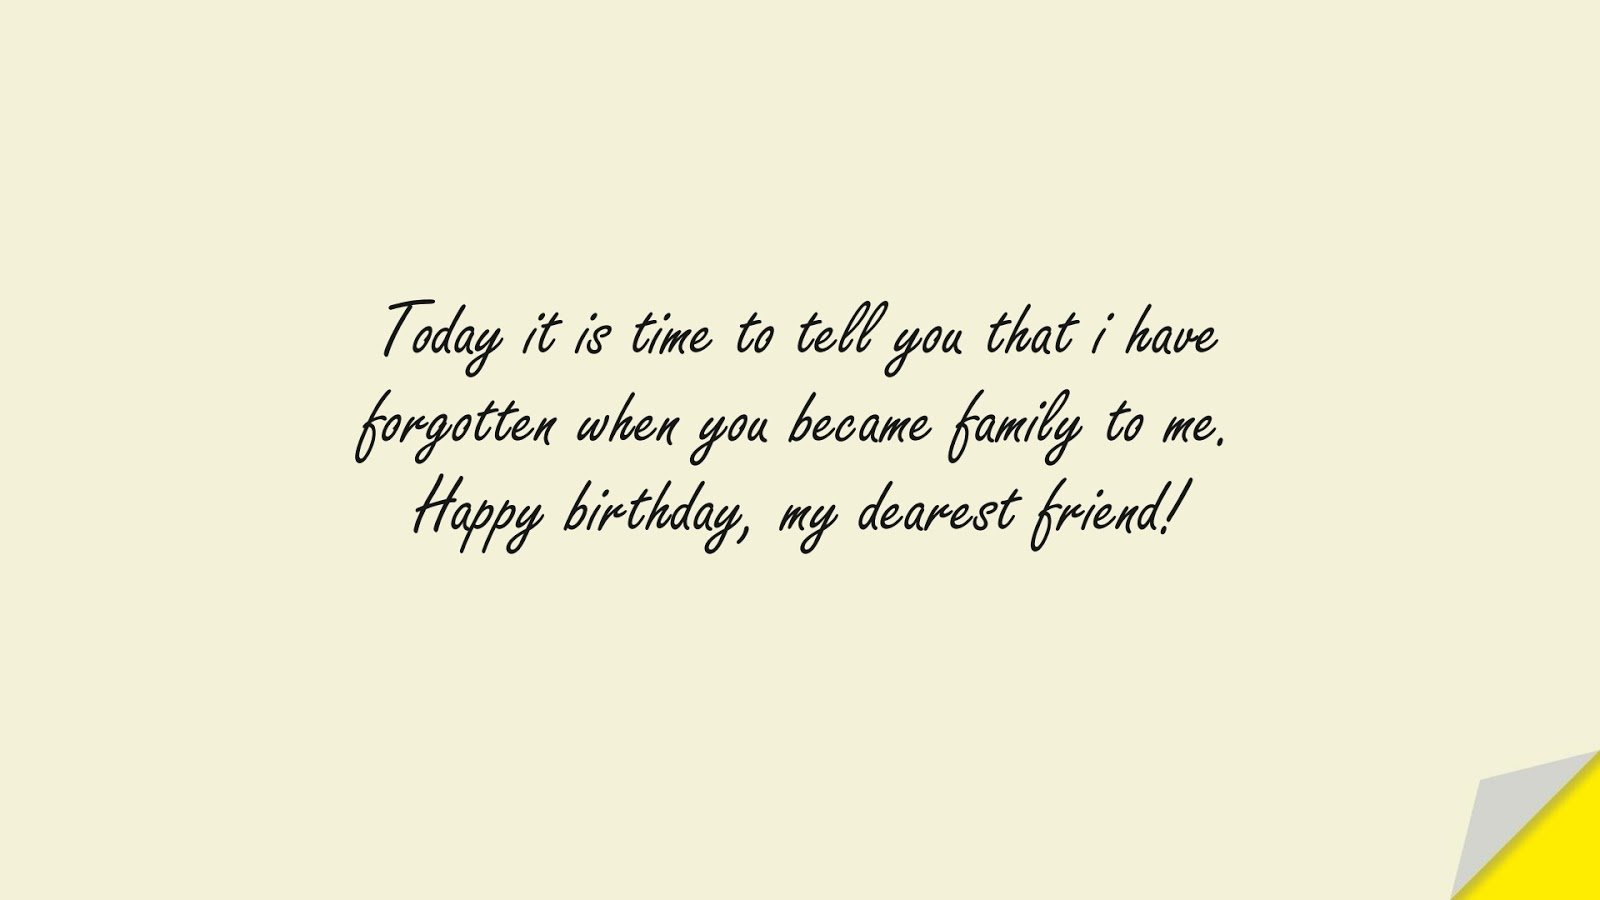 Today it is time to tell you that i have forgotten when you became family to me. Happy birthday, my dearest friend!FALSE